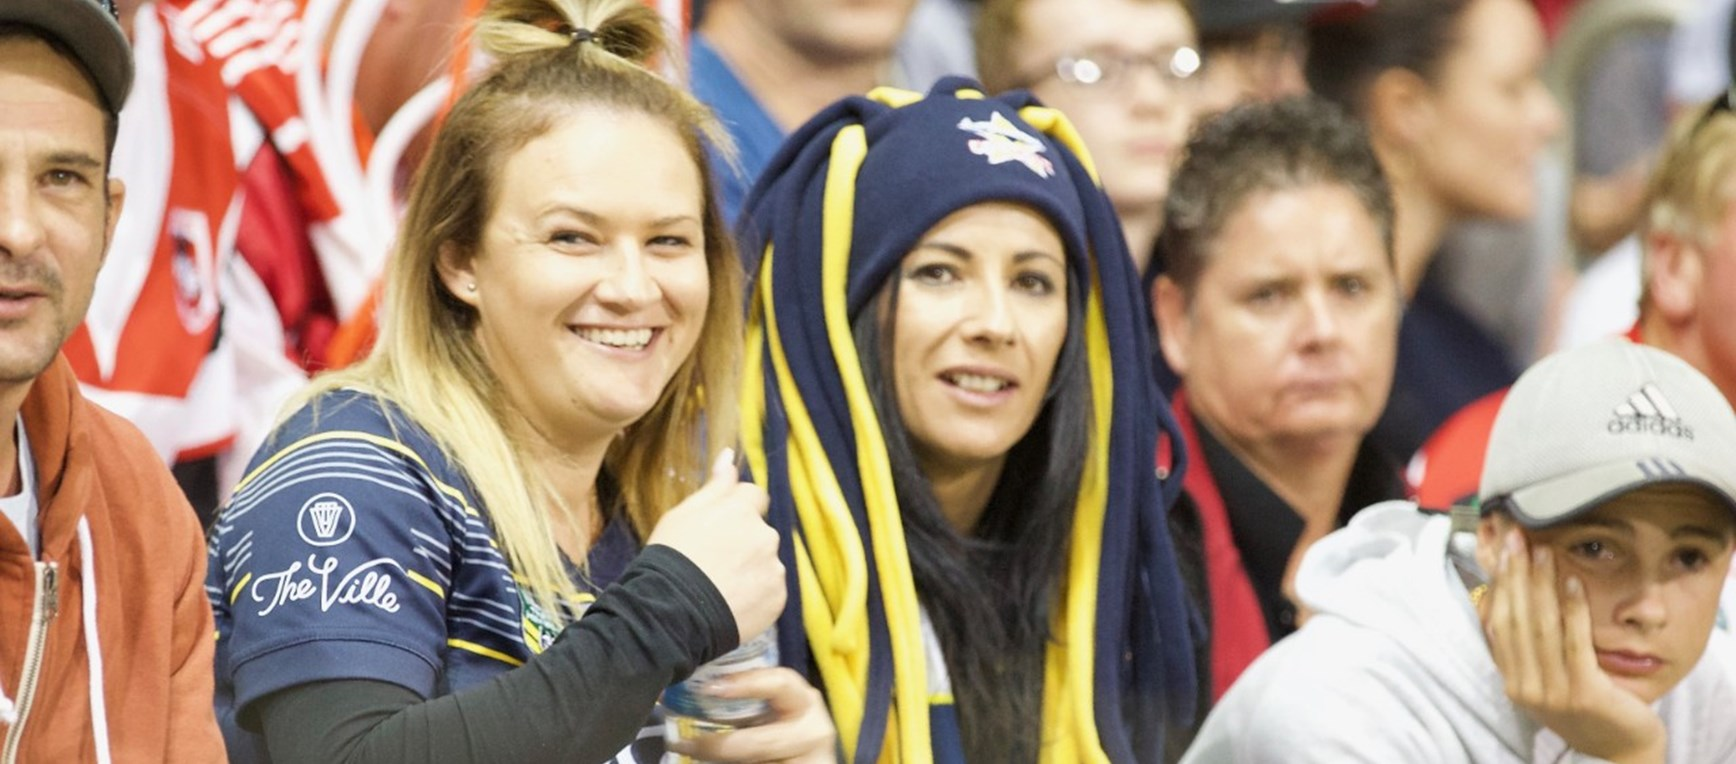 Fan gallery | Rd 7 v Dragons